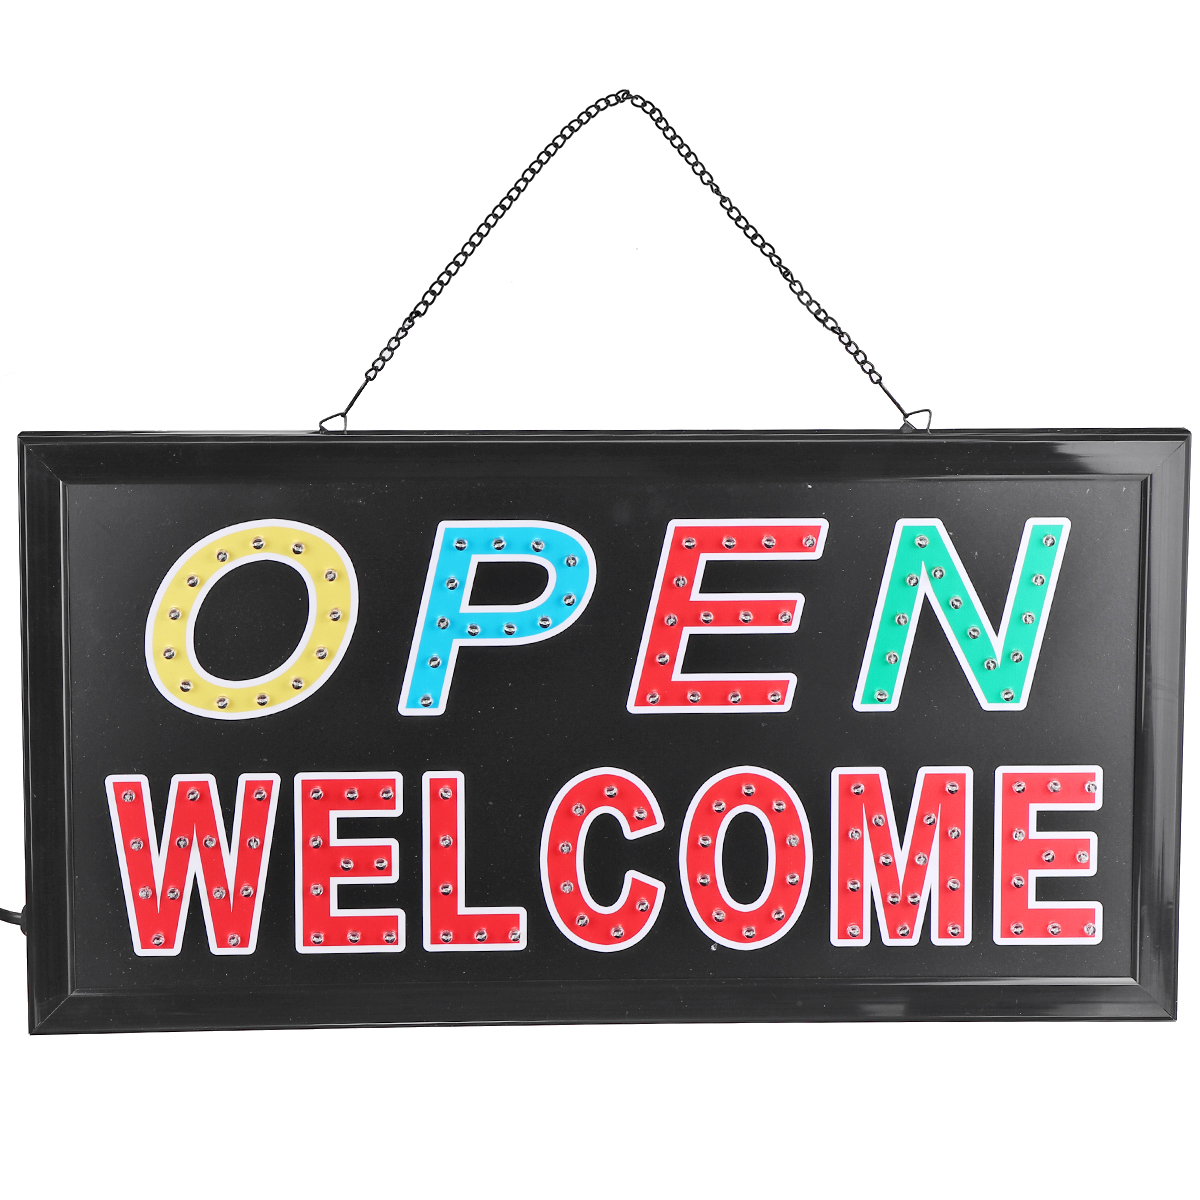 LED OPEN WELCOME Sign Board Cafe Bar Advertising Light Shop Hotel Hang Bar Decor